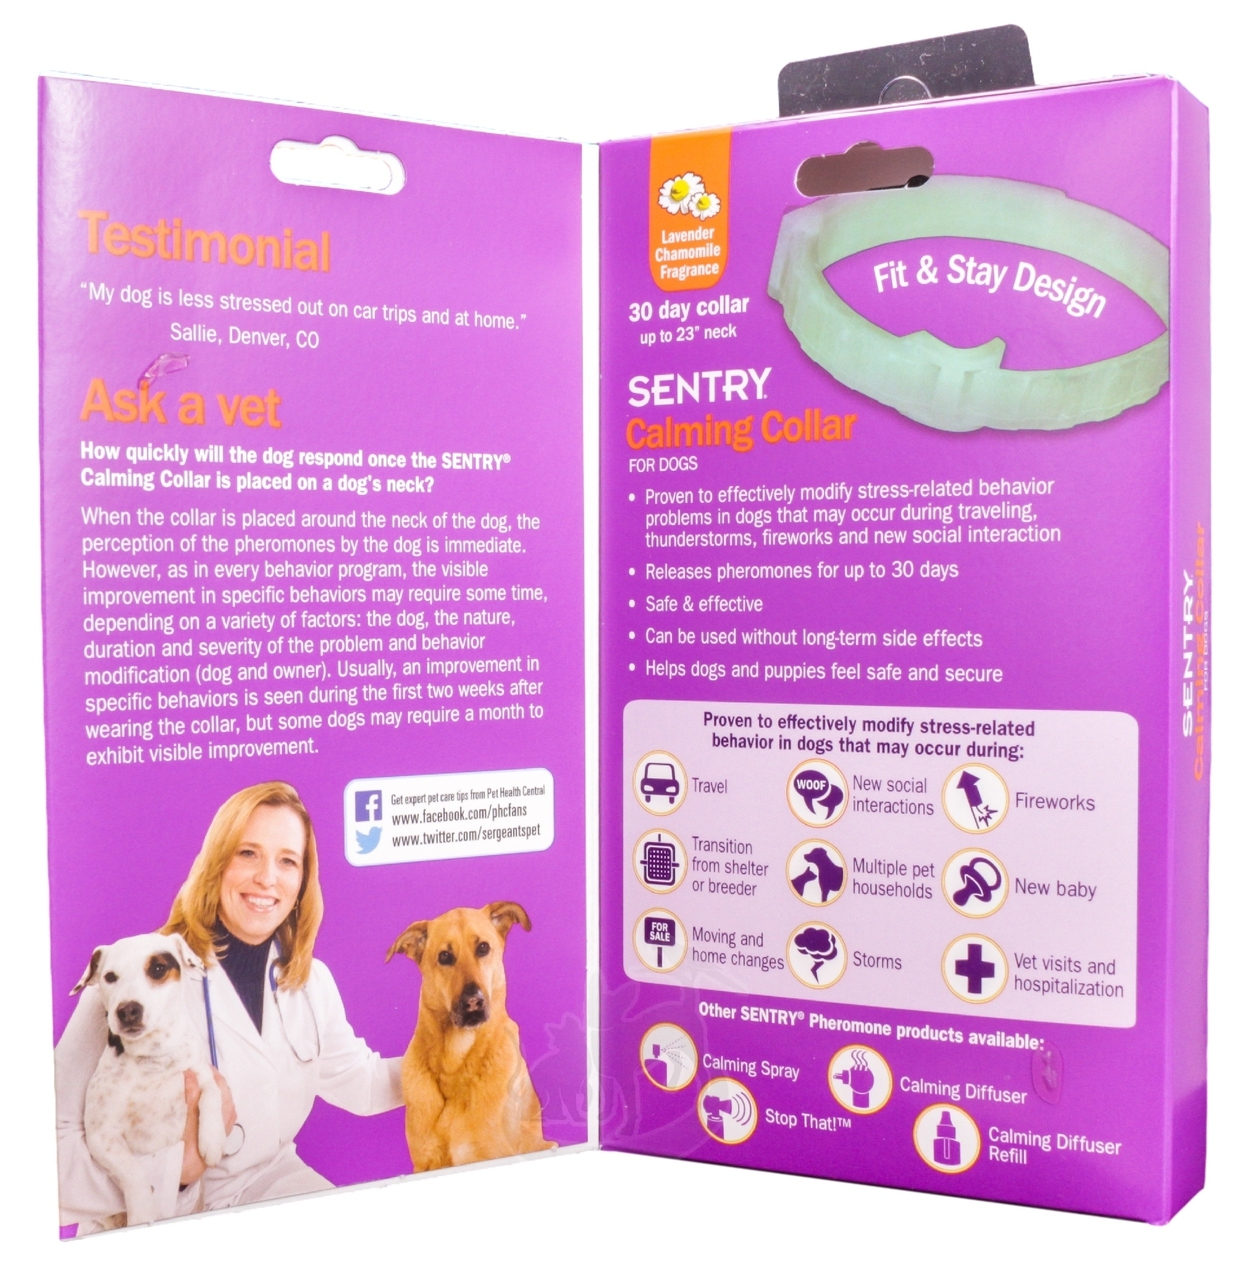 dog calming collar side effects